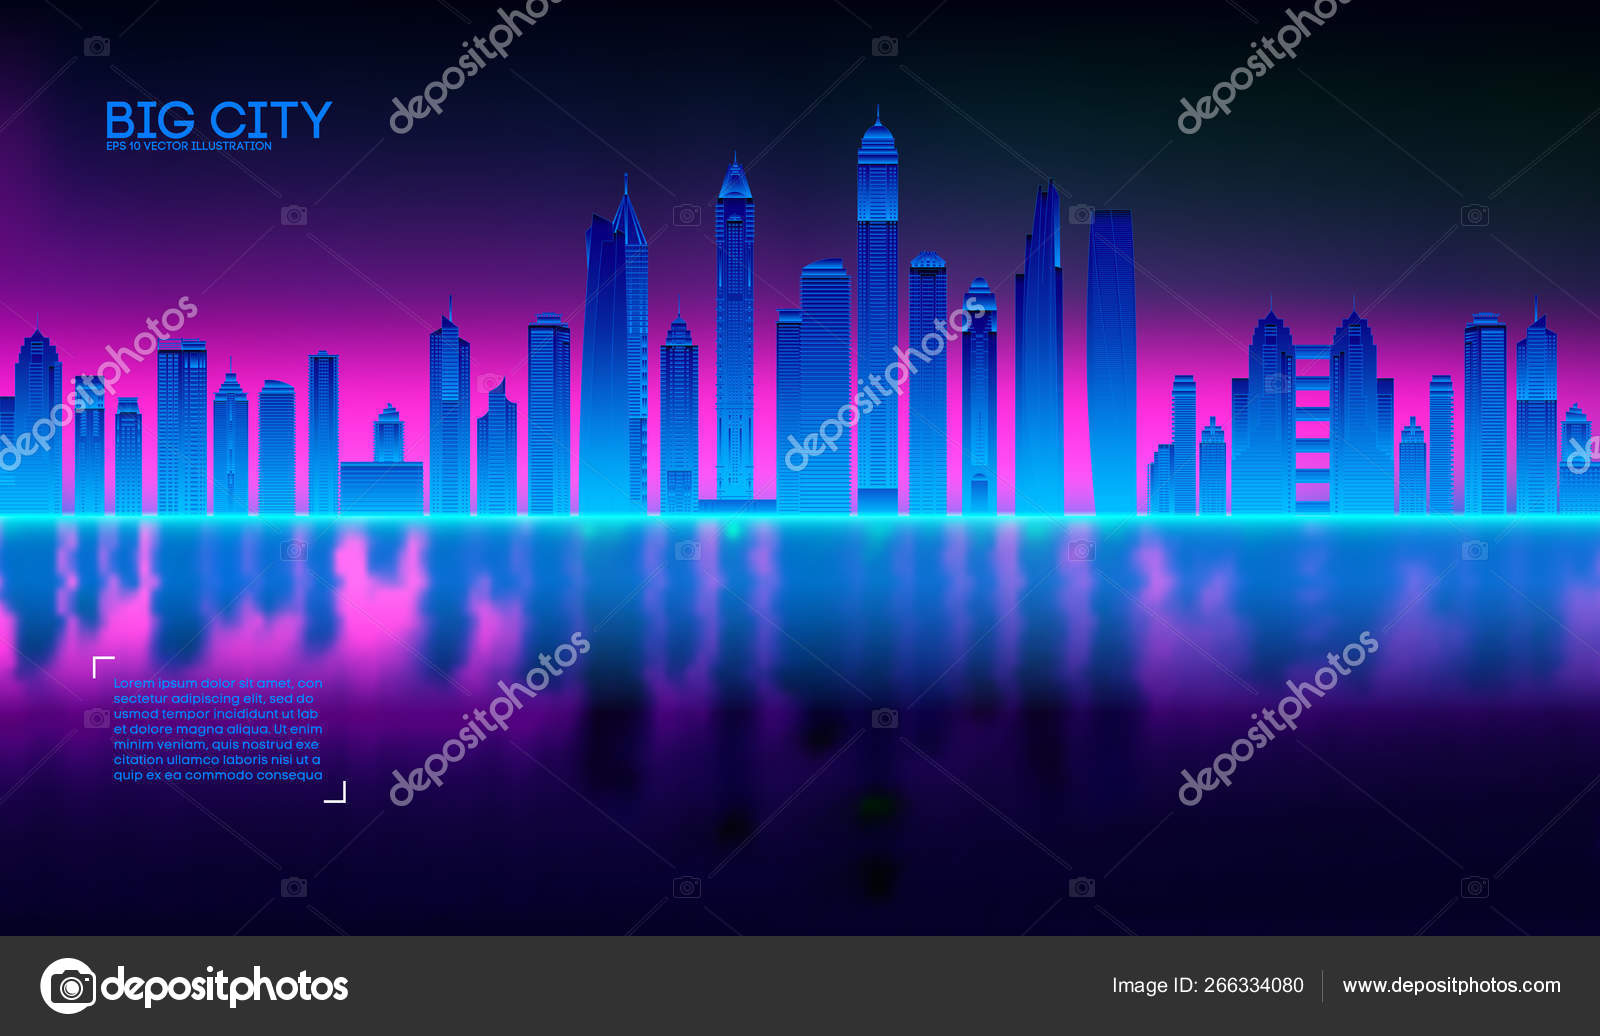 Retro wave background80s  City80s future retro synth